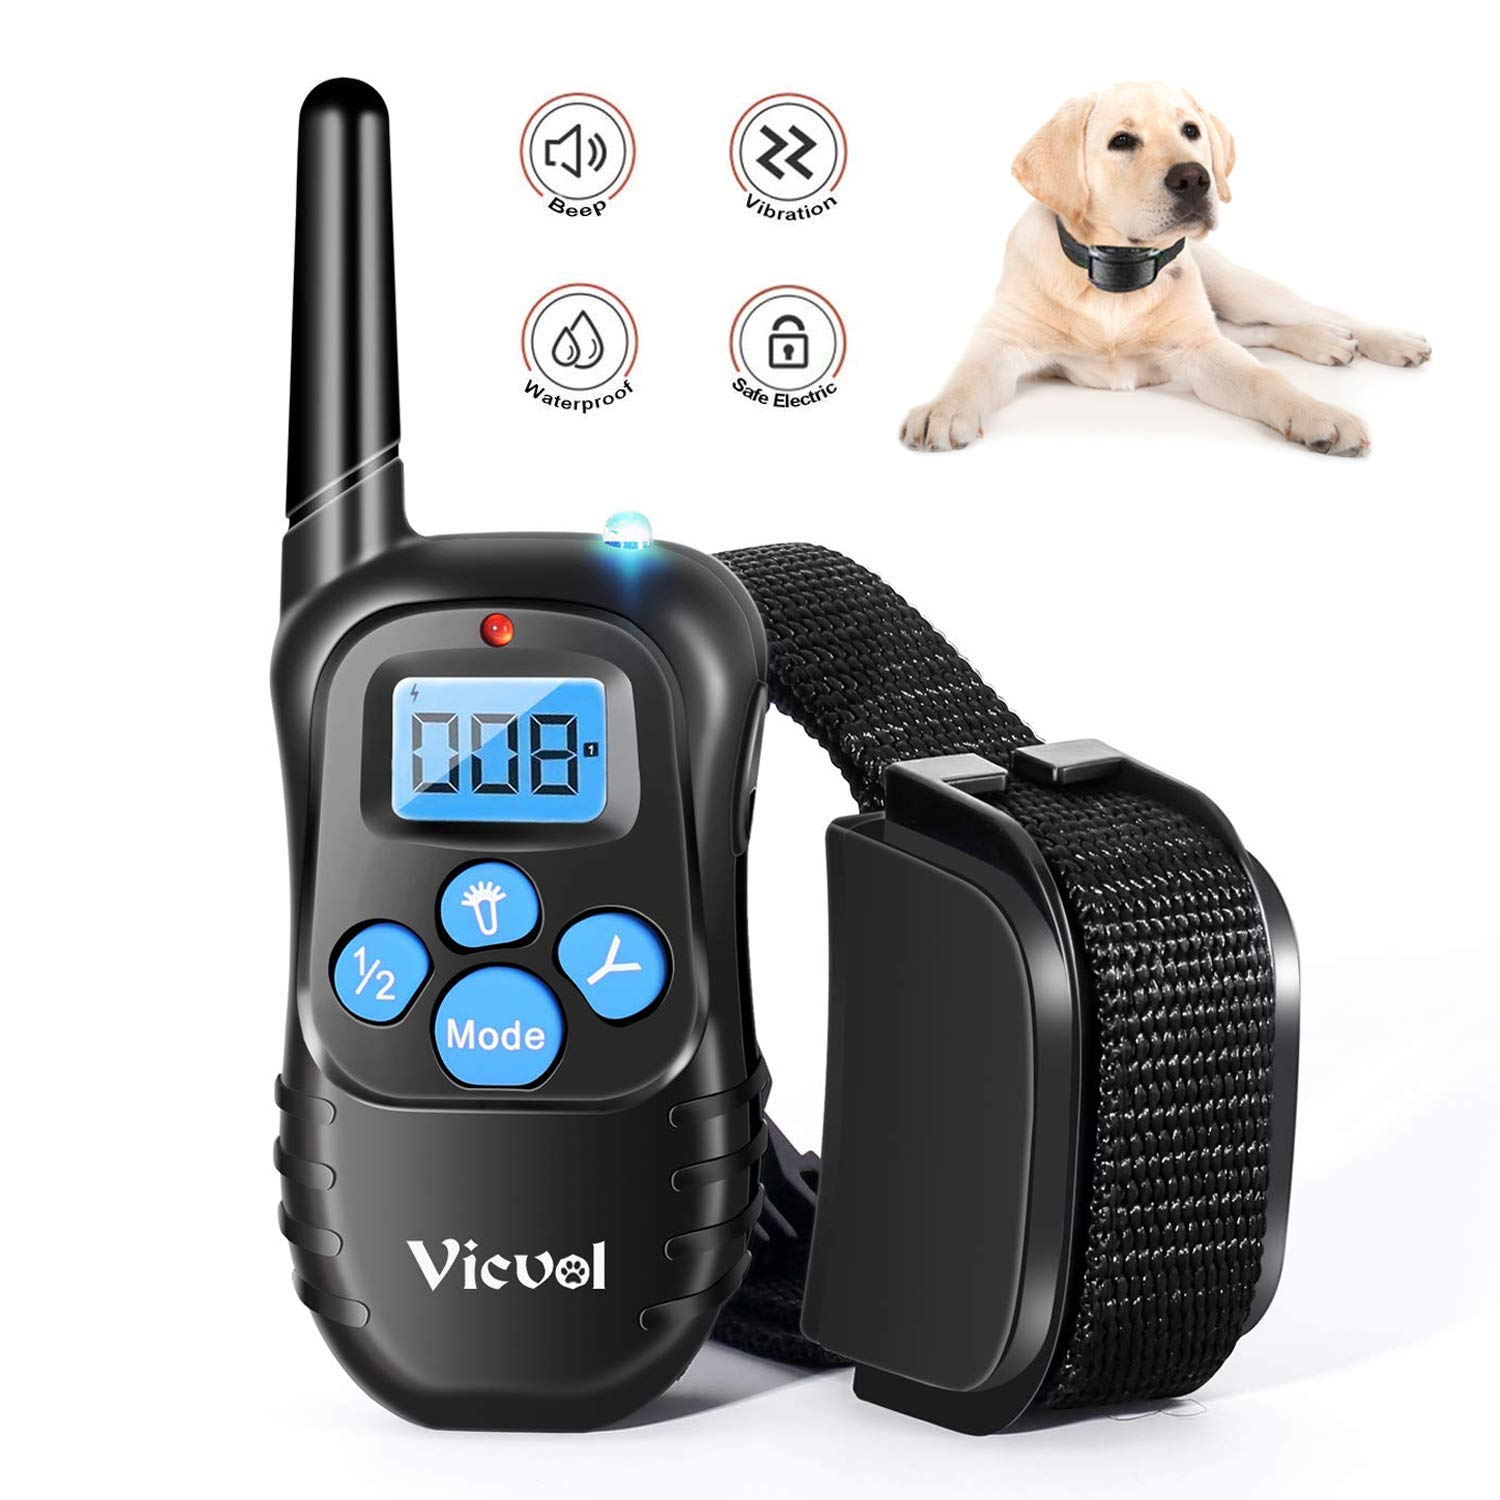 Vicvol Dog Training Collar Rechargeable Rainproof 330 yd Remote Dog Training Shock Collar -Vibration, Vibra Shock Electronic Collar,Shock and Tone with Backlight LCD